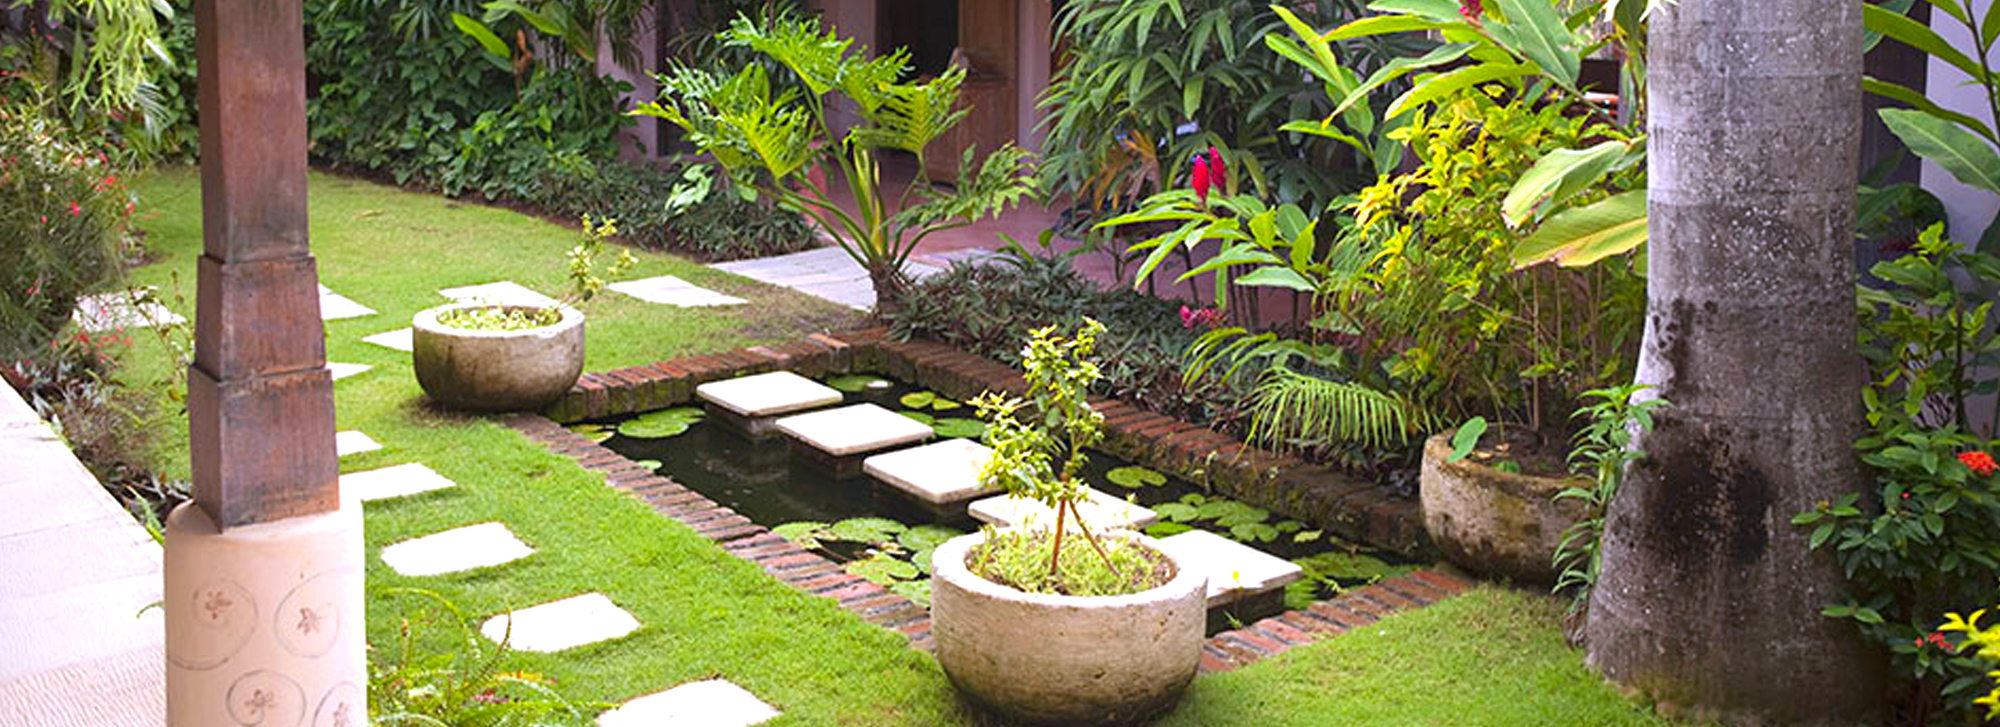 Landscaping Water Management and Drainage